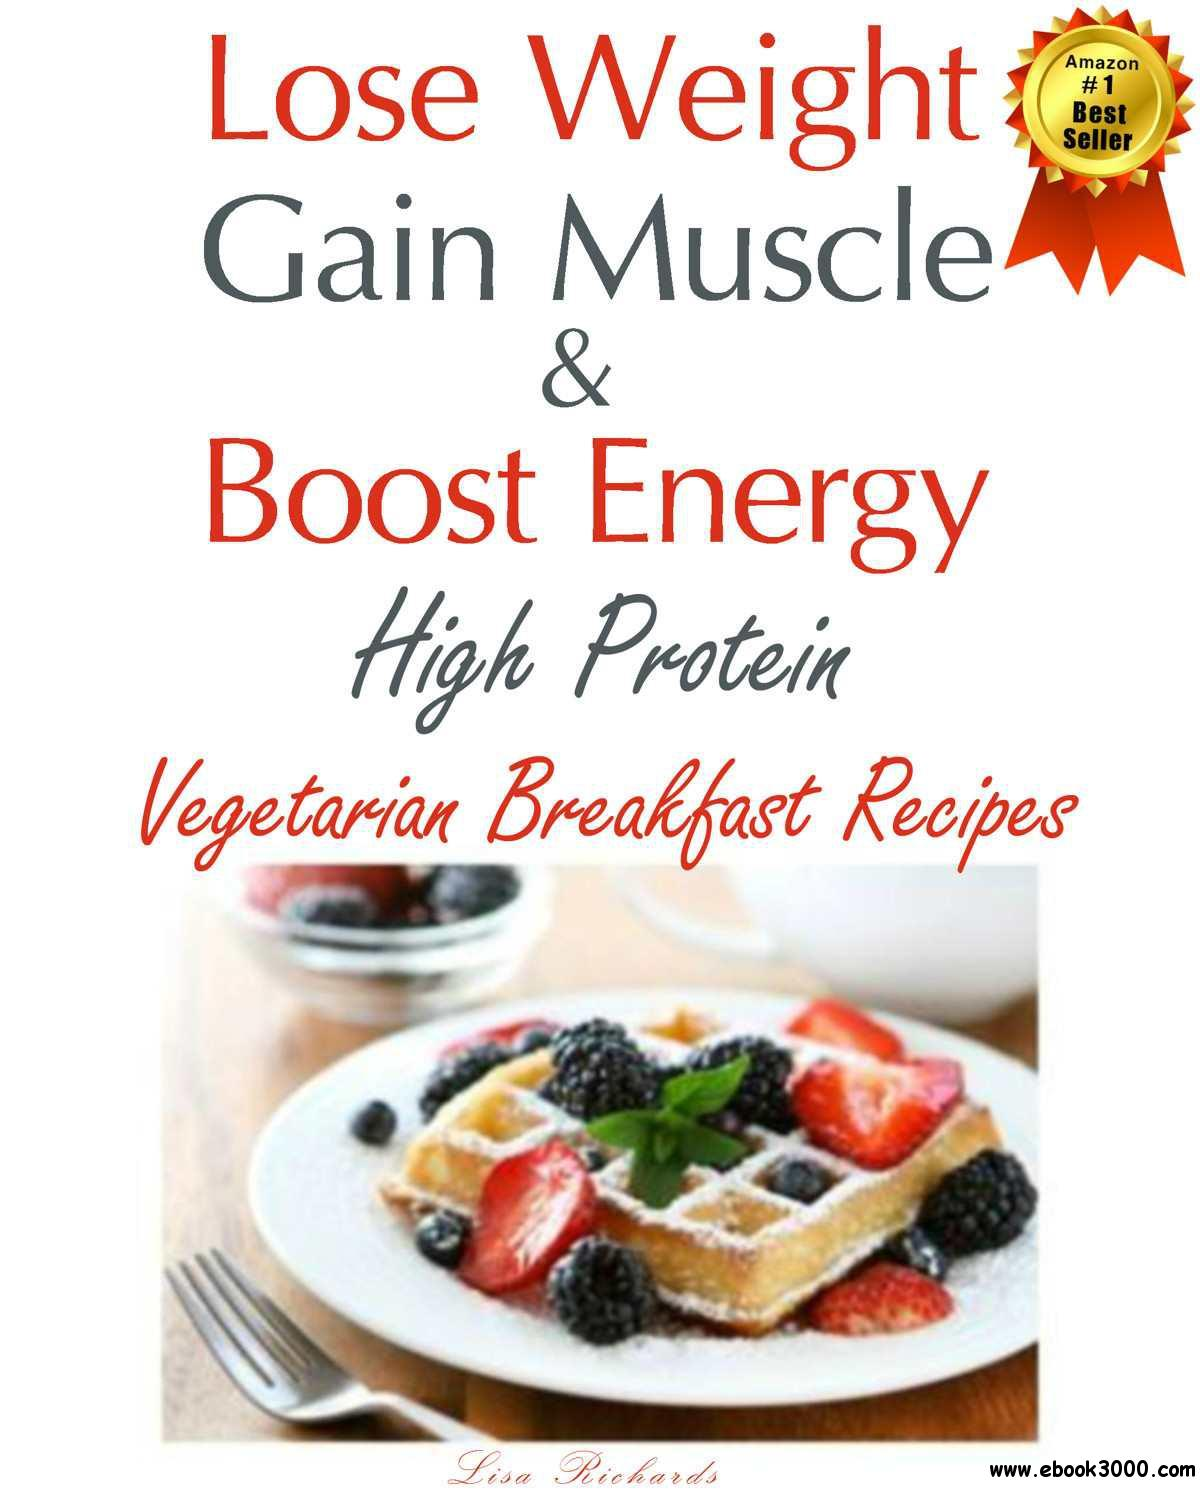 Lose Weight & Gain Muscle - High Protein Vegetarian Breakfast Recipes (protein for vegetarians) free download